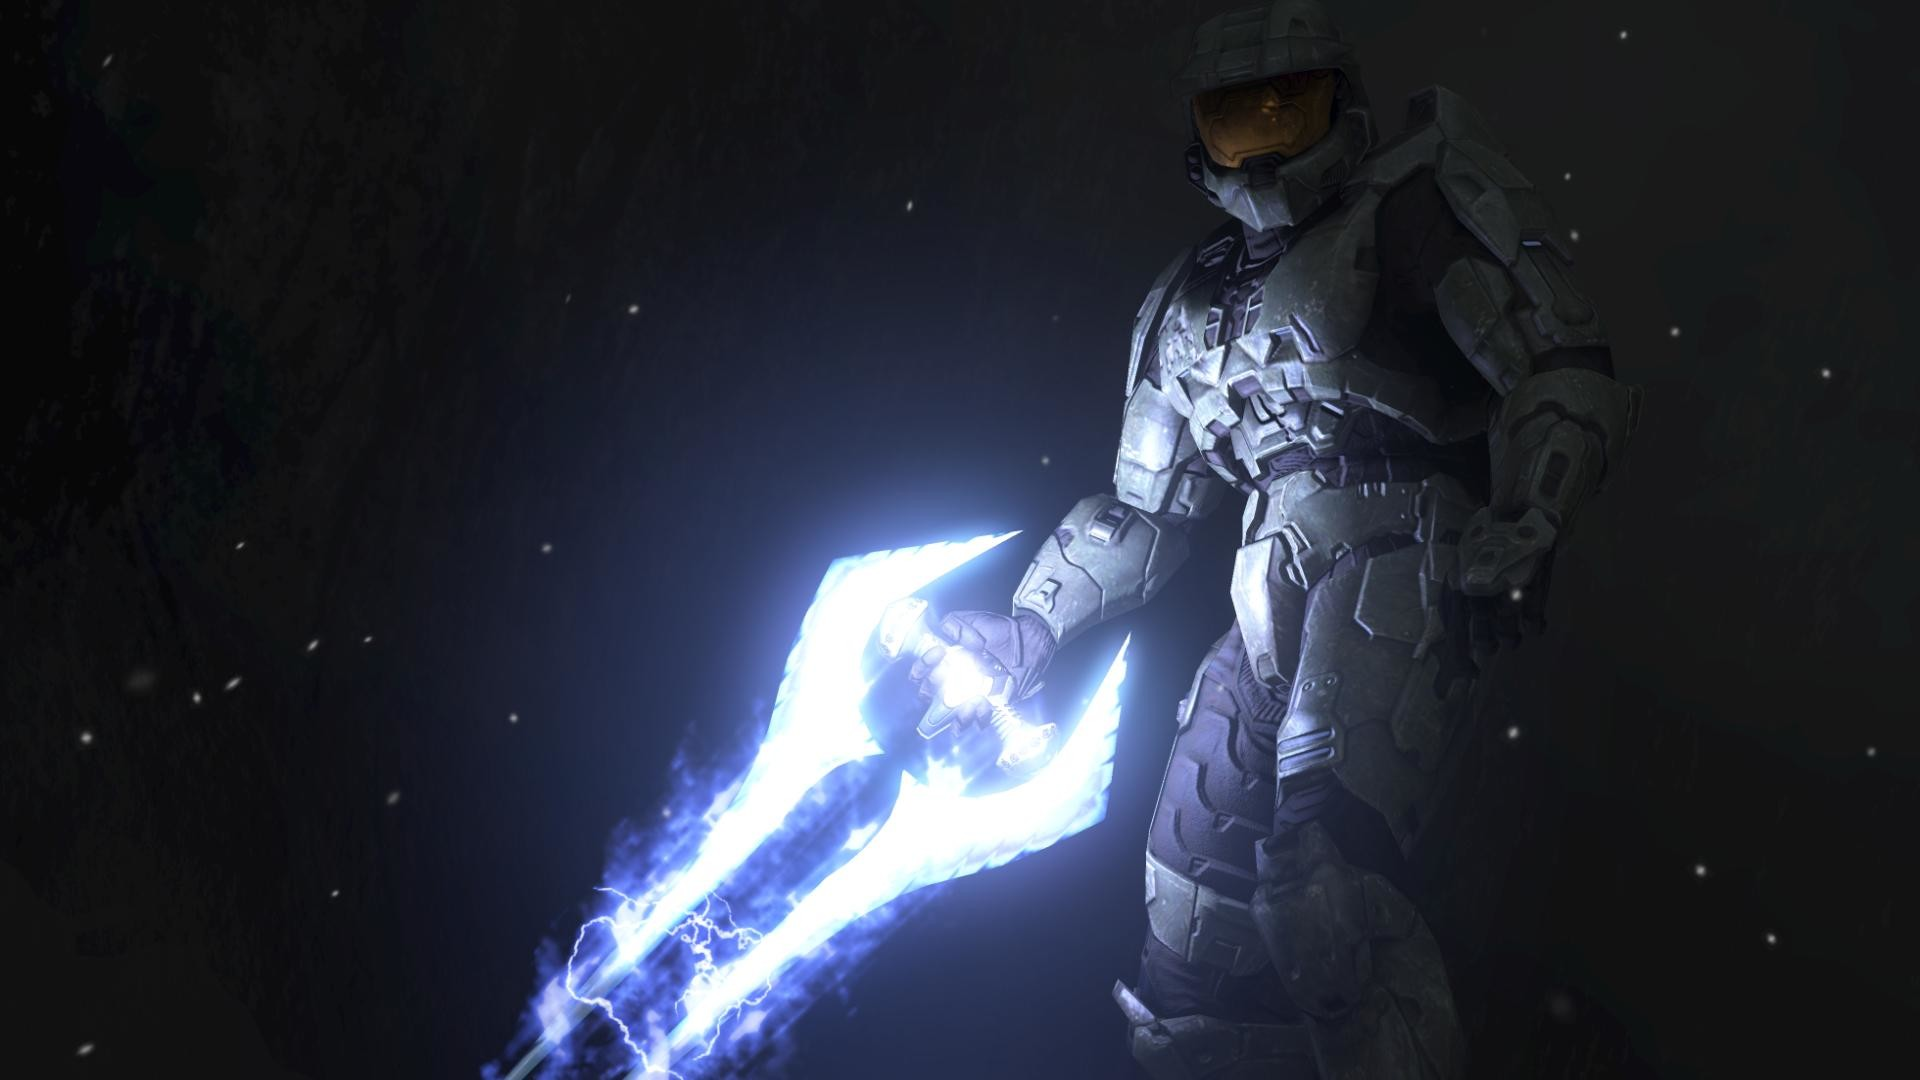 halo combat evolution, halo animated wallpaper